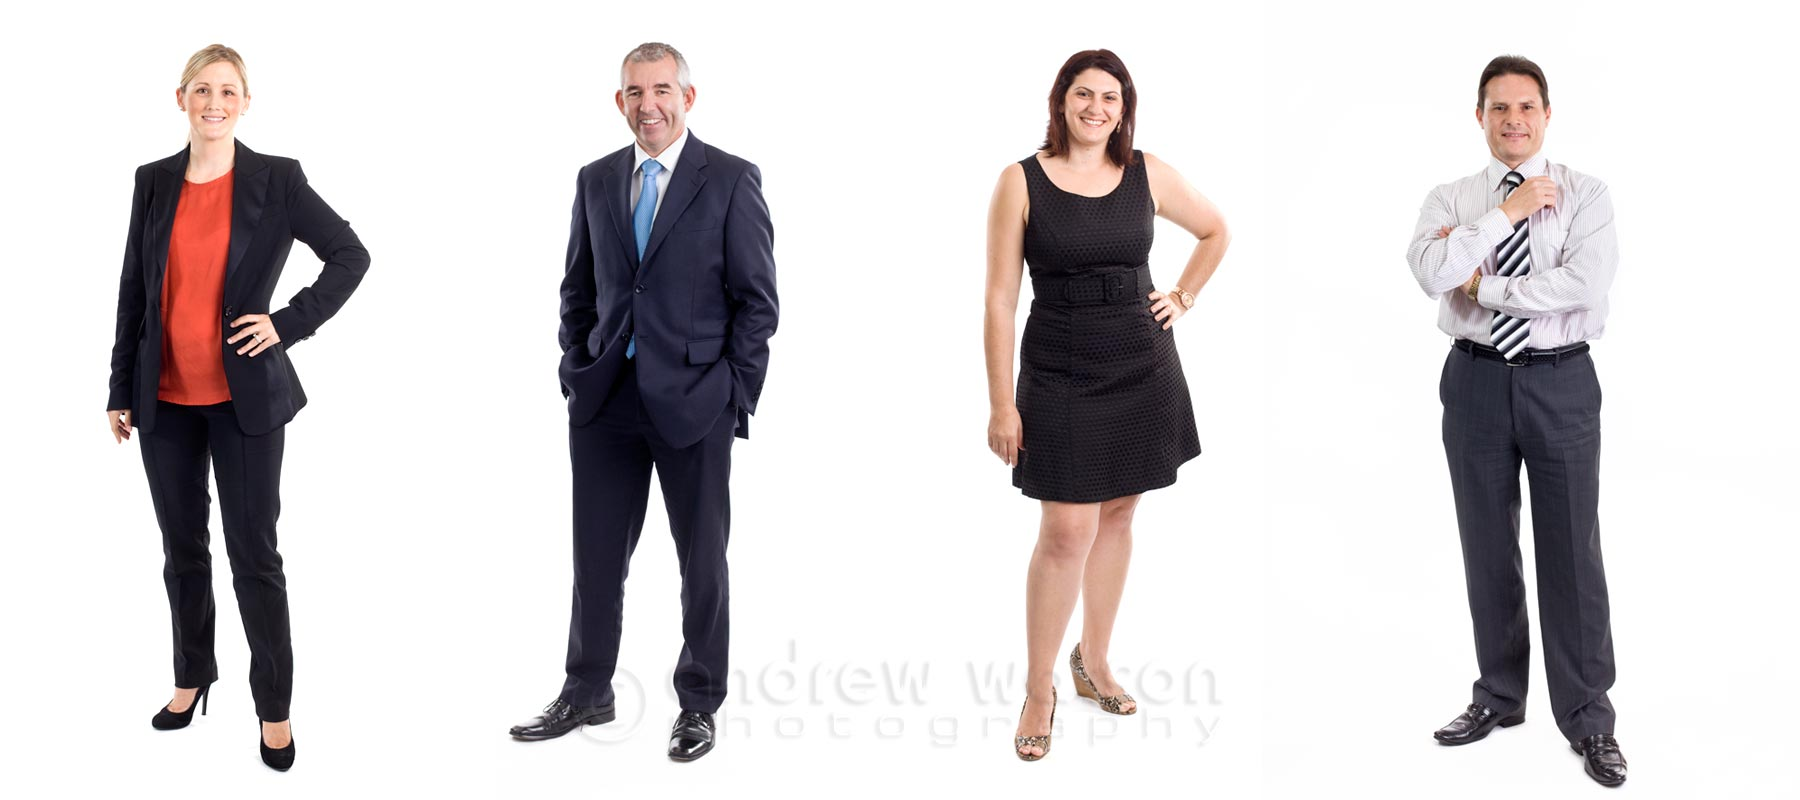 Corporate Photography - Studio business portraits for accountancy firm